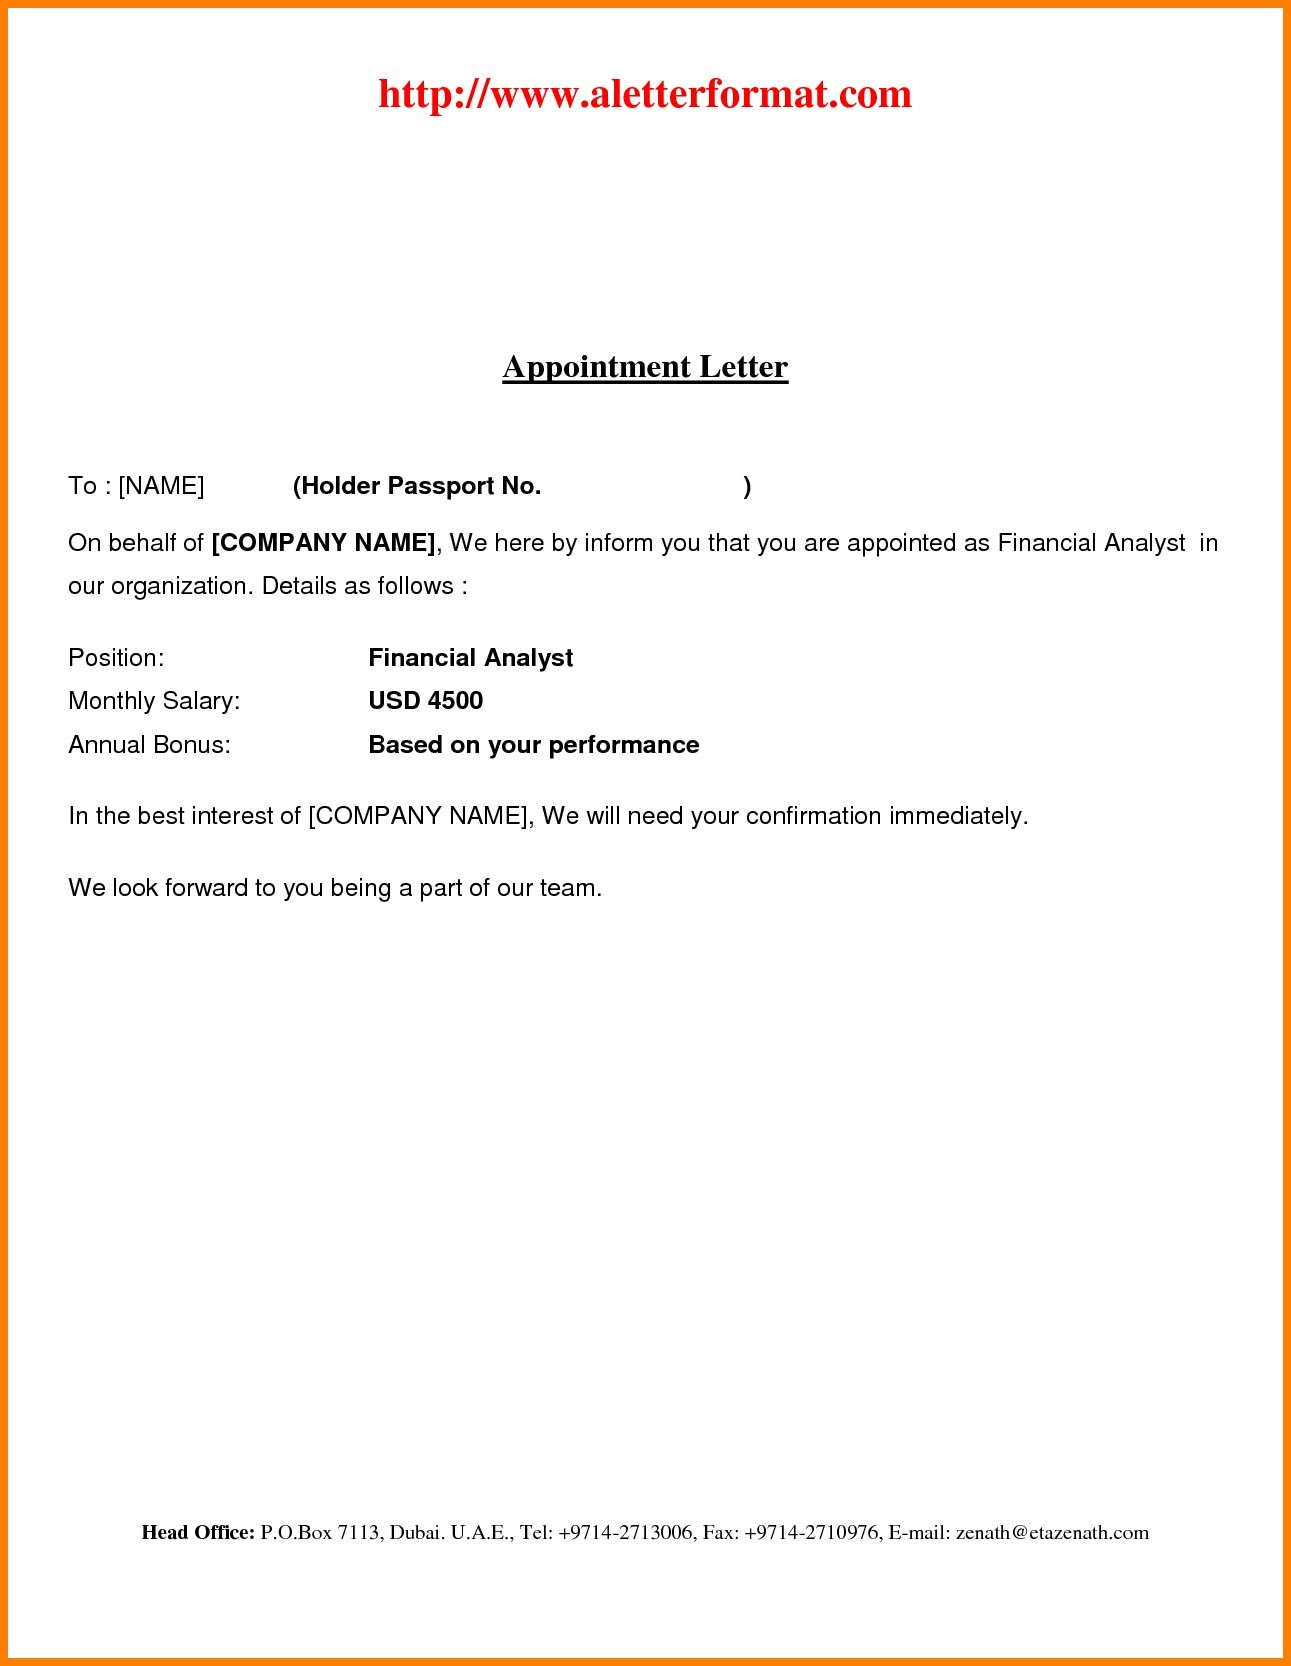 job offer letter template pdf